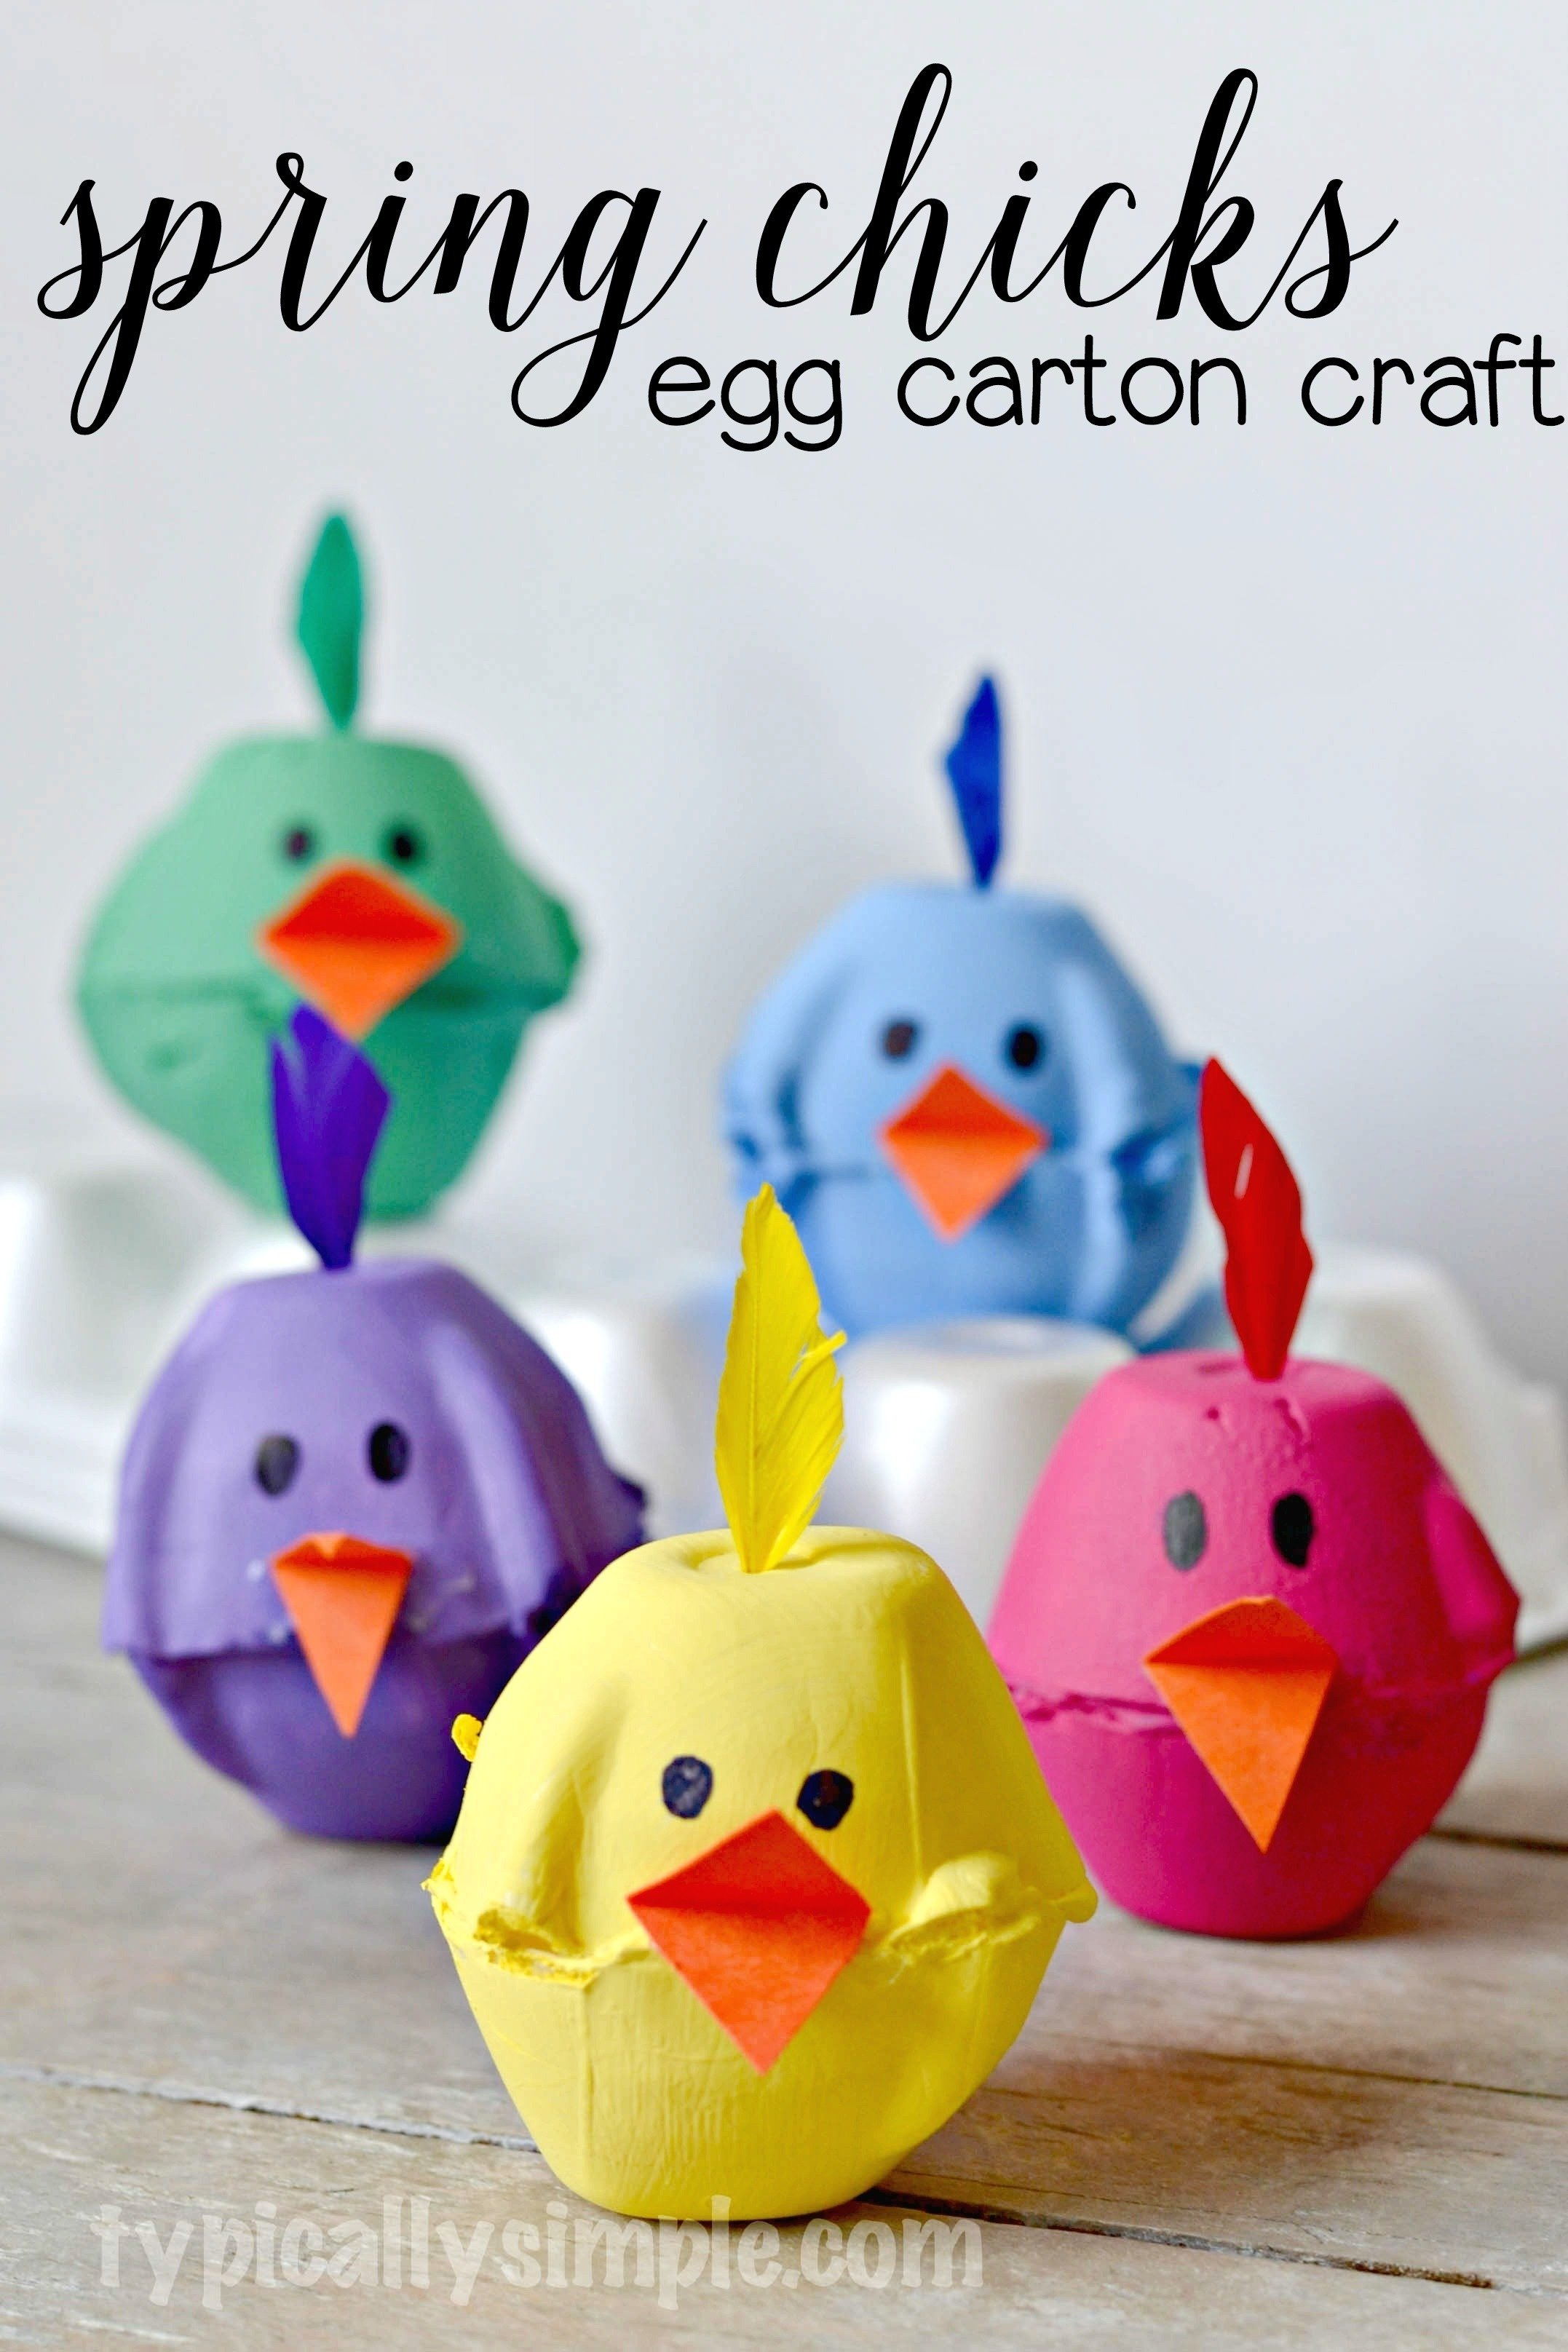 10 Stylish Easter Craft Ideas For Toddlers easy children easter crafts ye craft ideas 1 2020